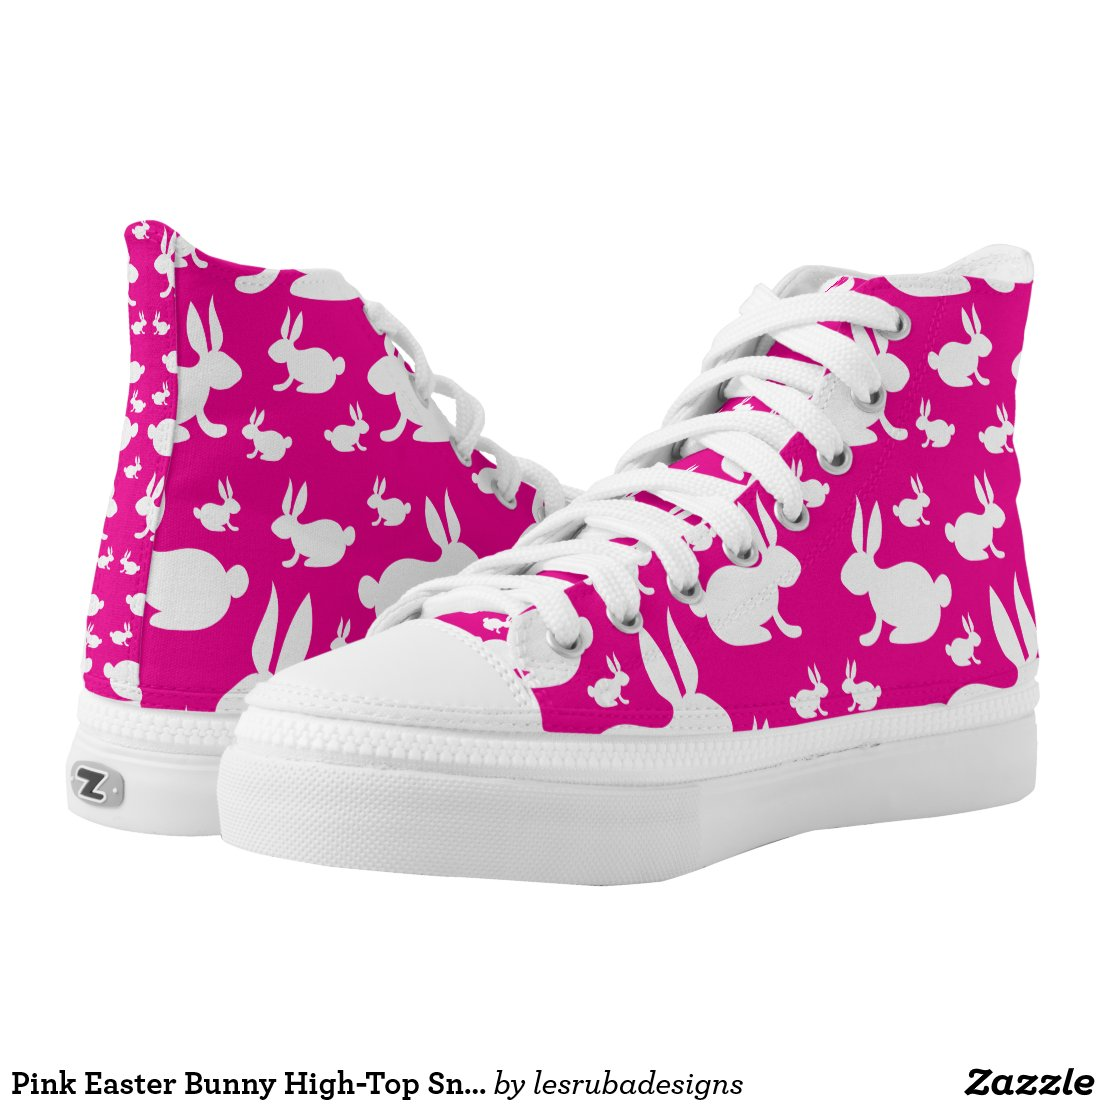 Bunny High-Top Sneakers